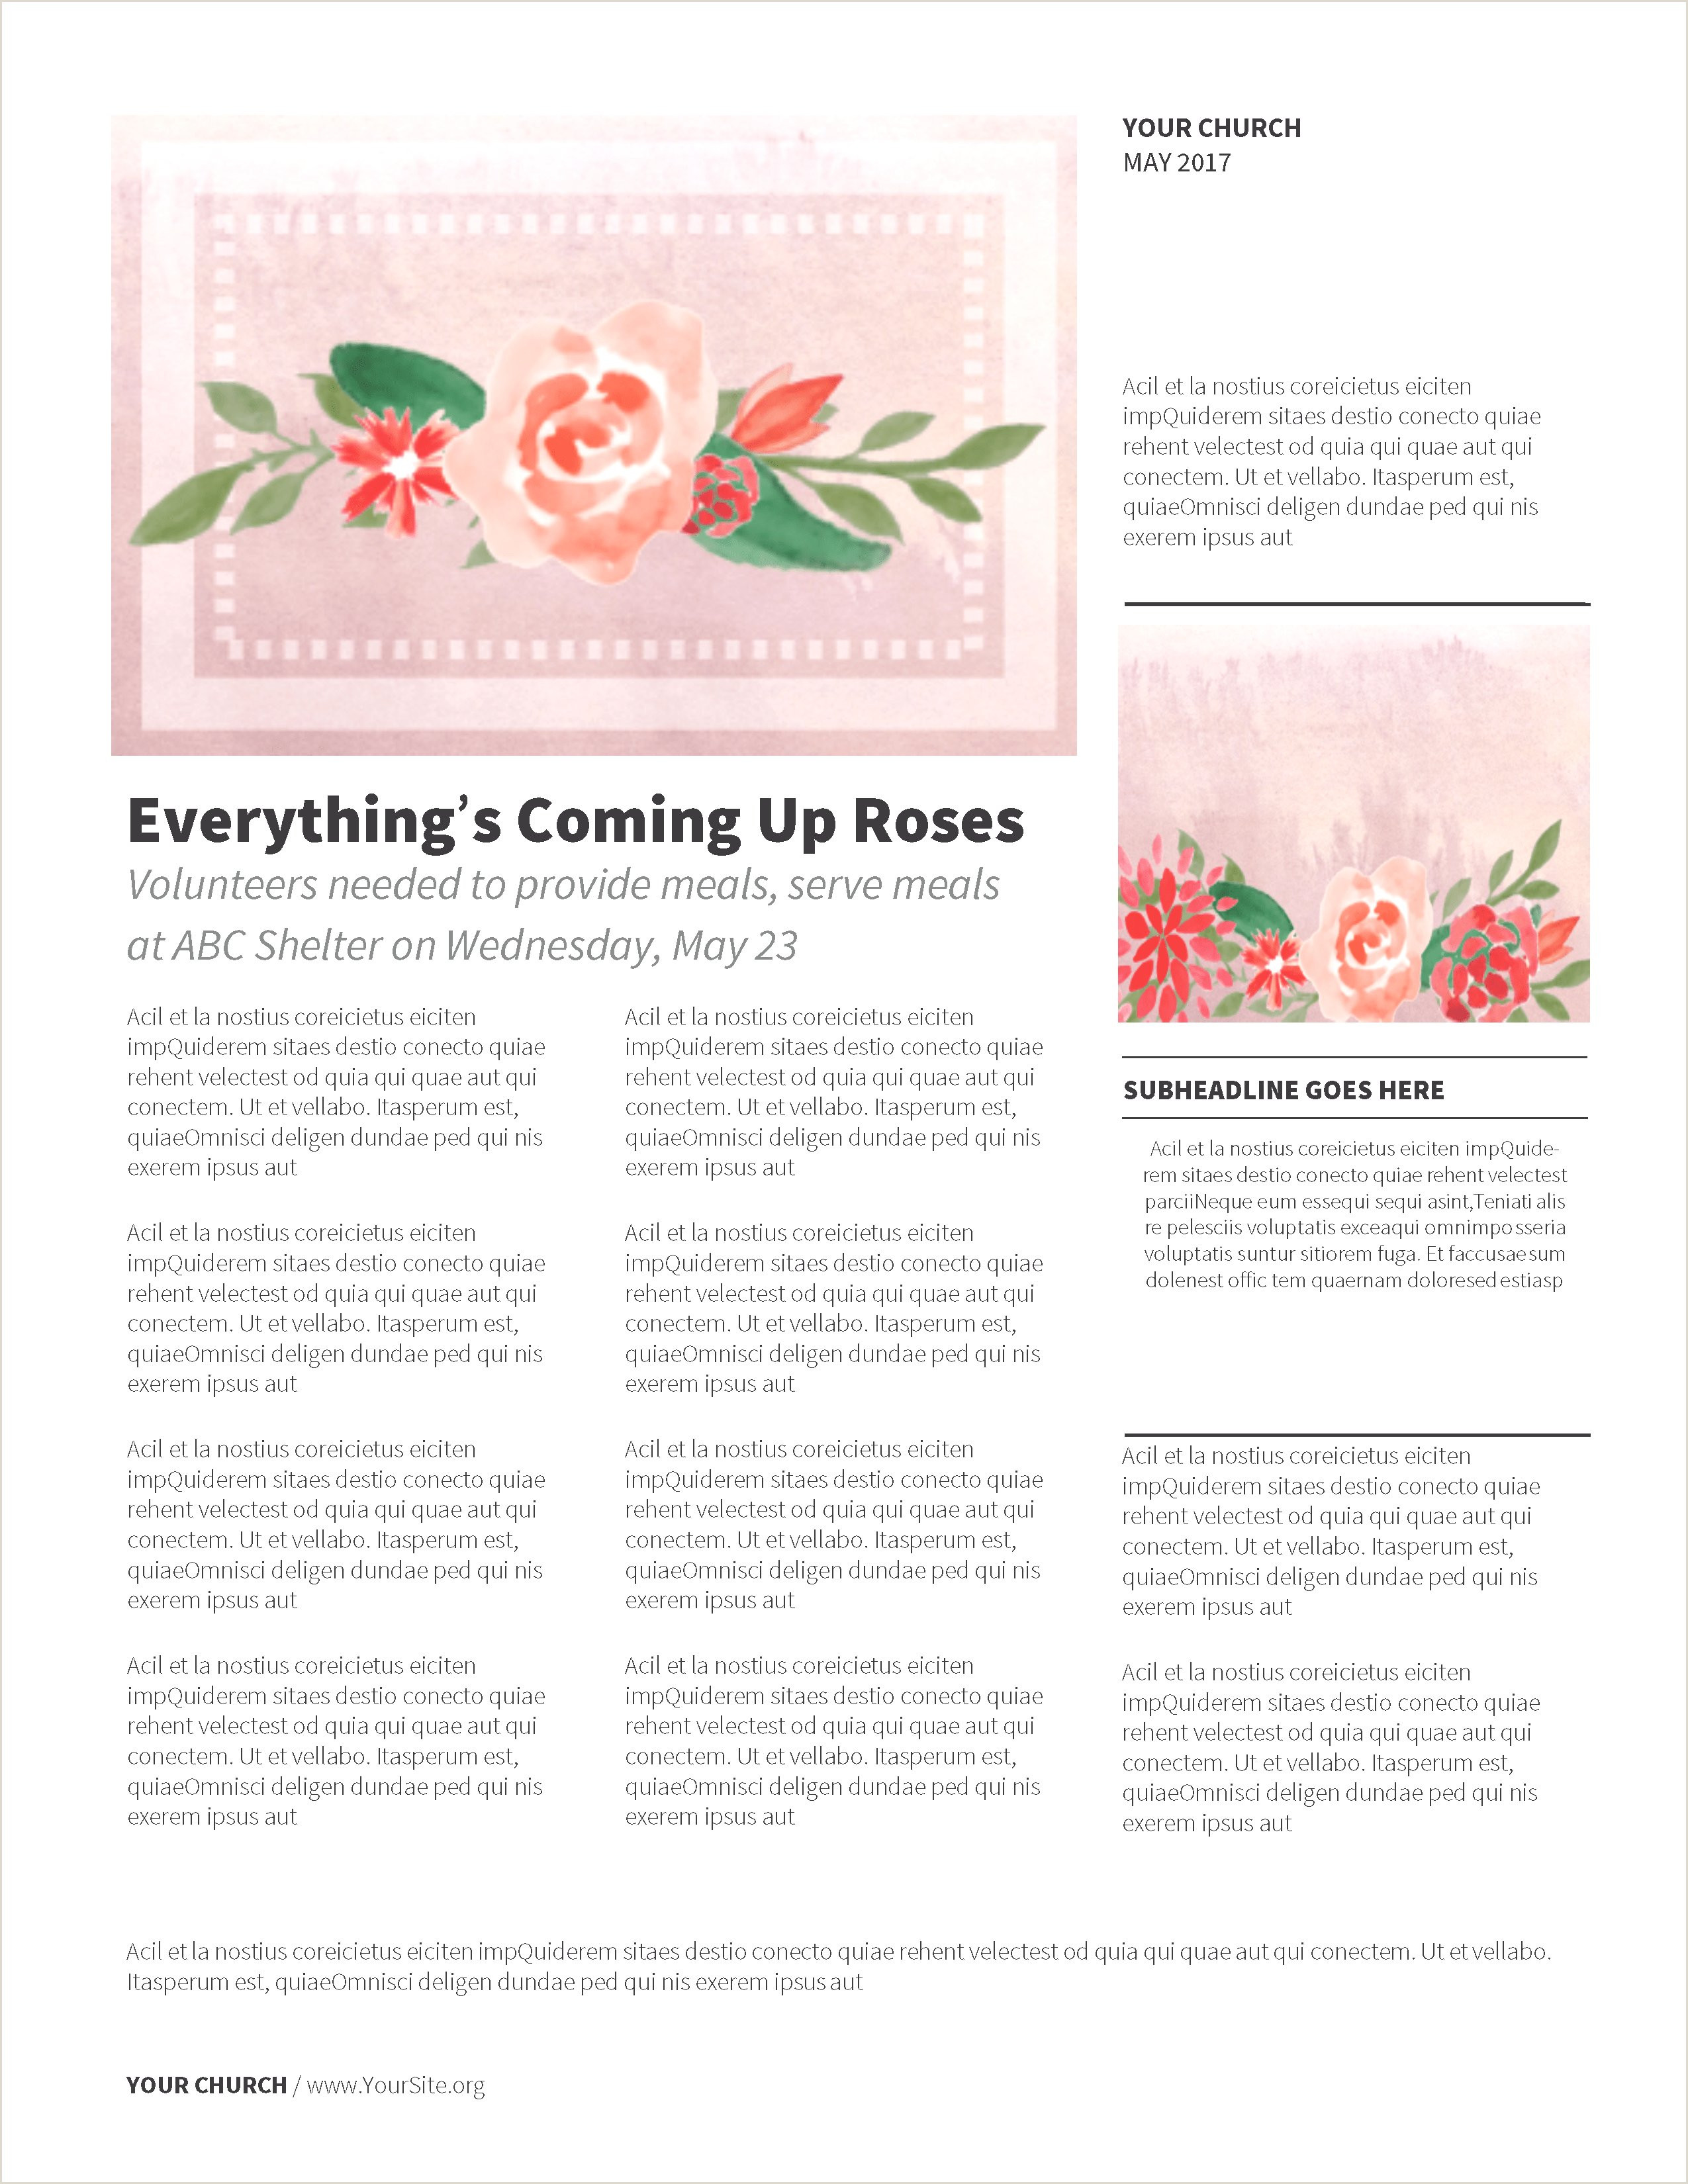 Rose Flower Powerpoint Backgrounds Cool Bootstrap 4 Template